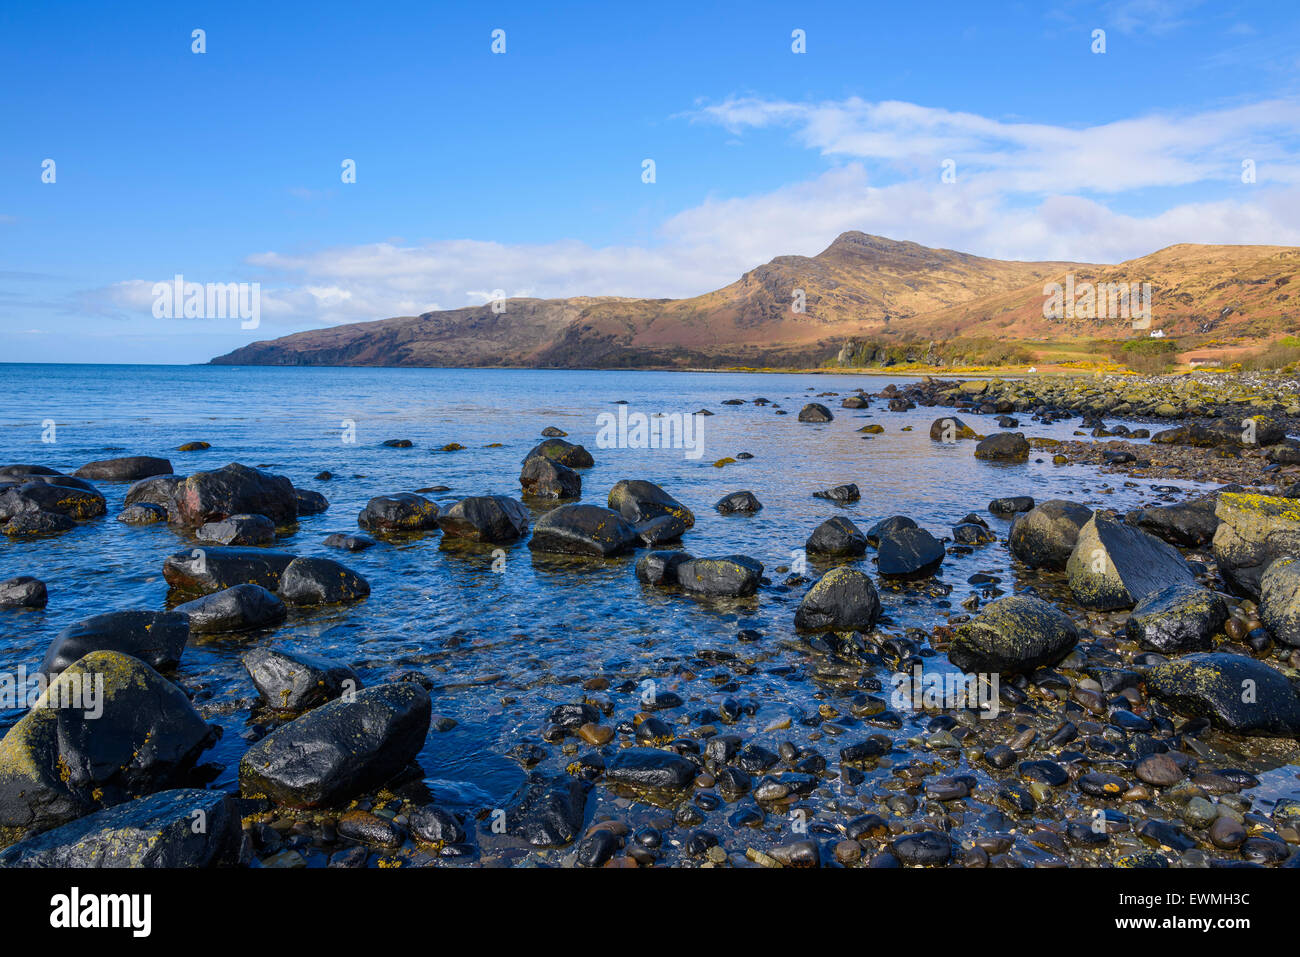 Loch Buie, Isle of Mull, Hebrides, Argyll and Bute, Scotland - Stock Image